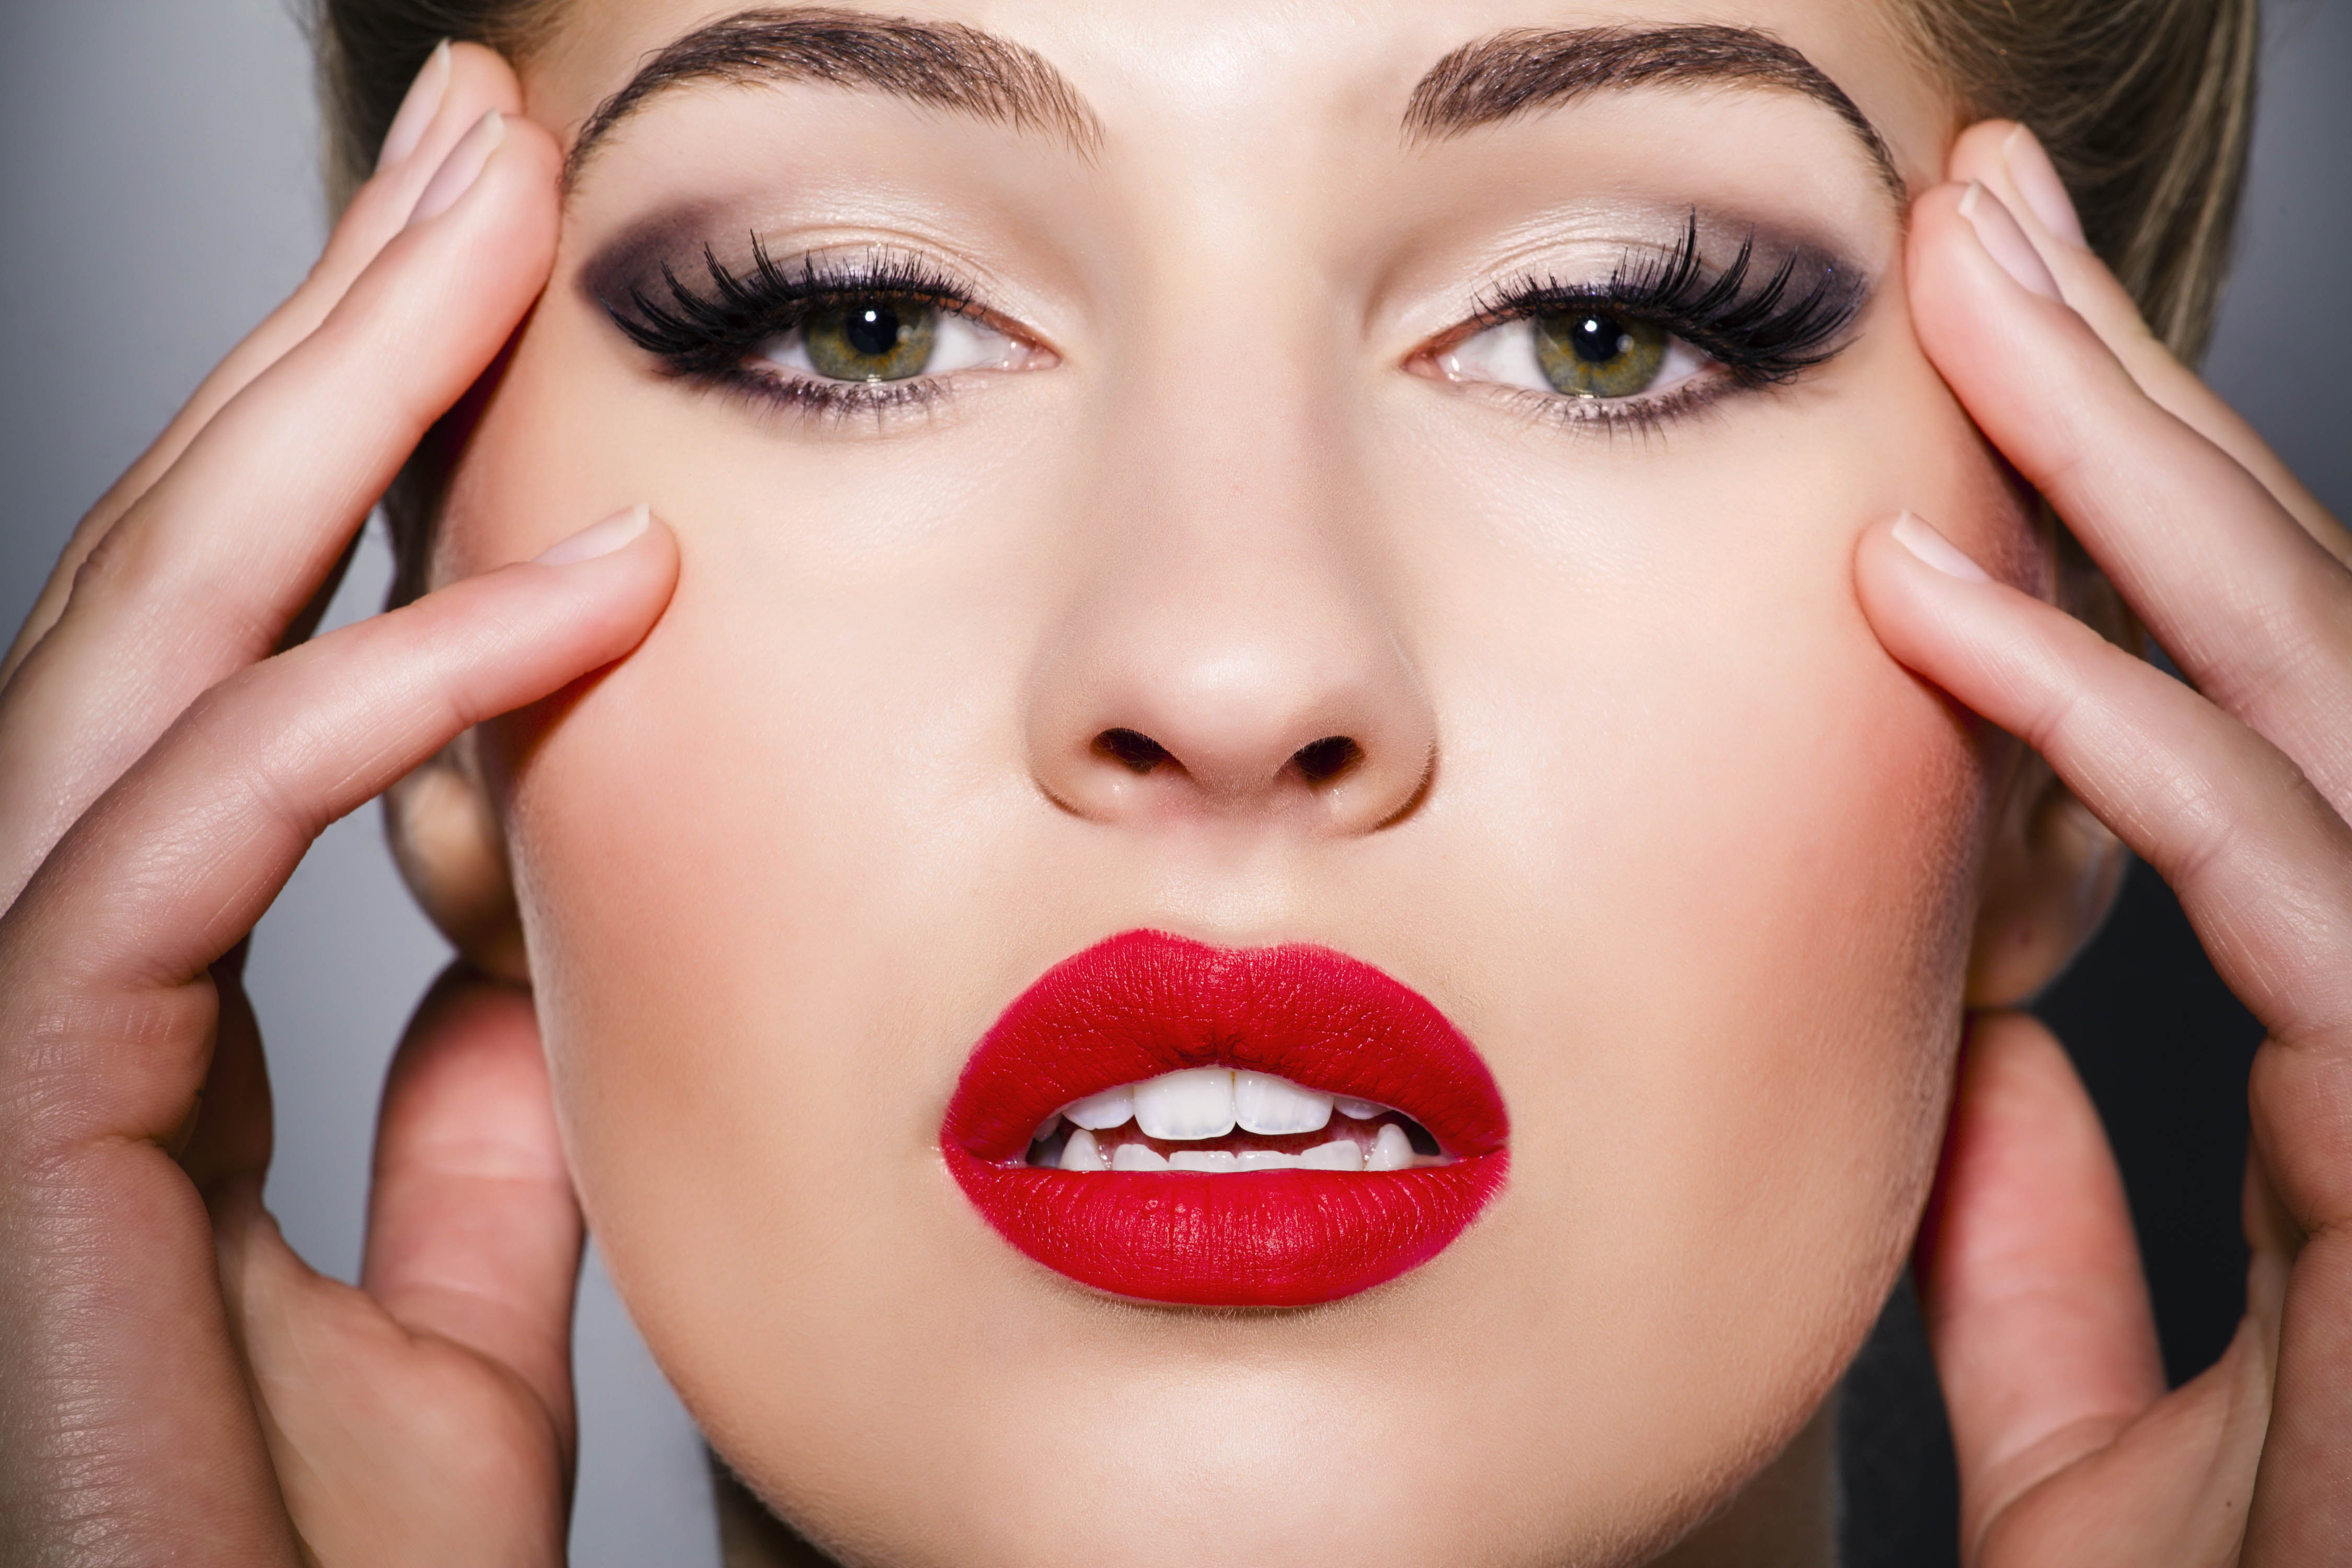 MAKE UP- Looking for WOMEN'S SECRET TO LOOK PRETTY & SEXY?